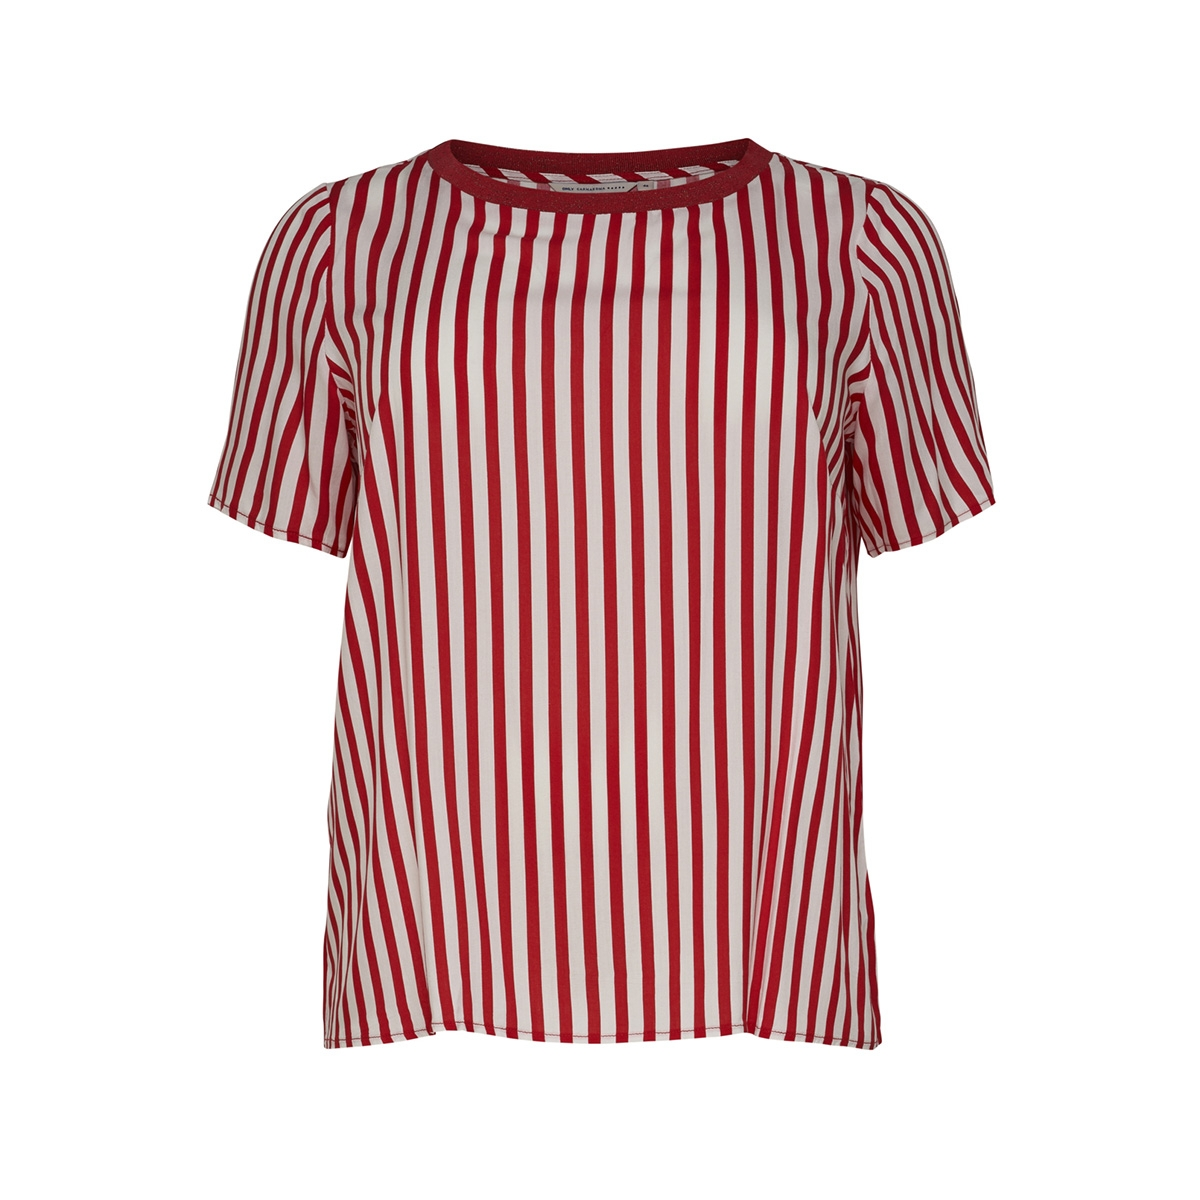 carluna ss top 15175484 only carmakoma t-shirt high risk red/high risk